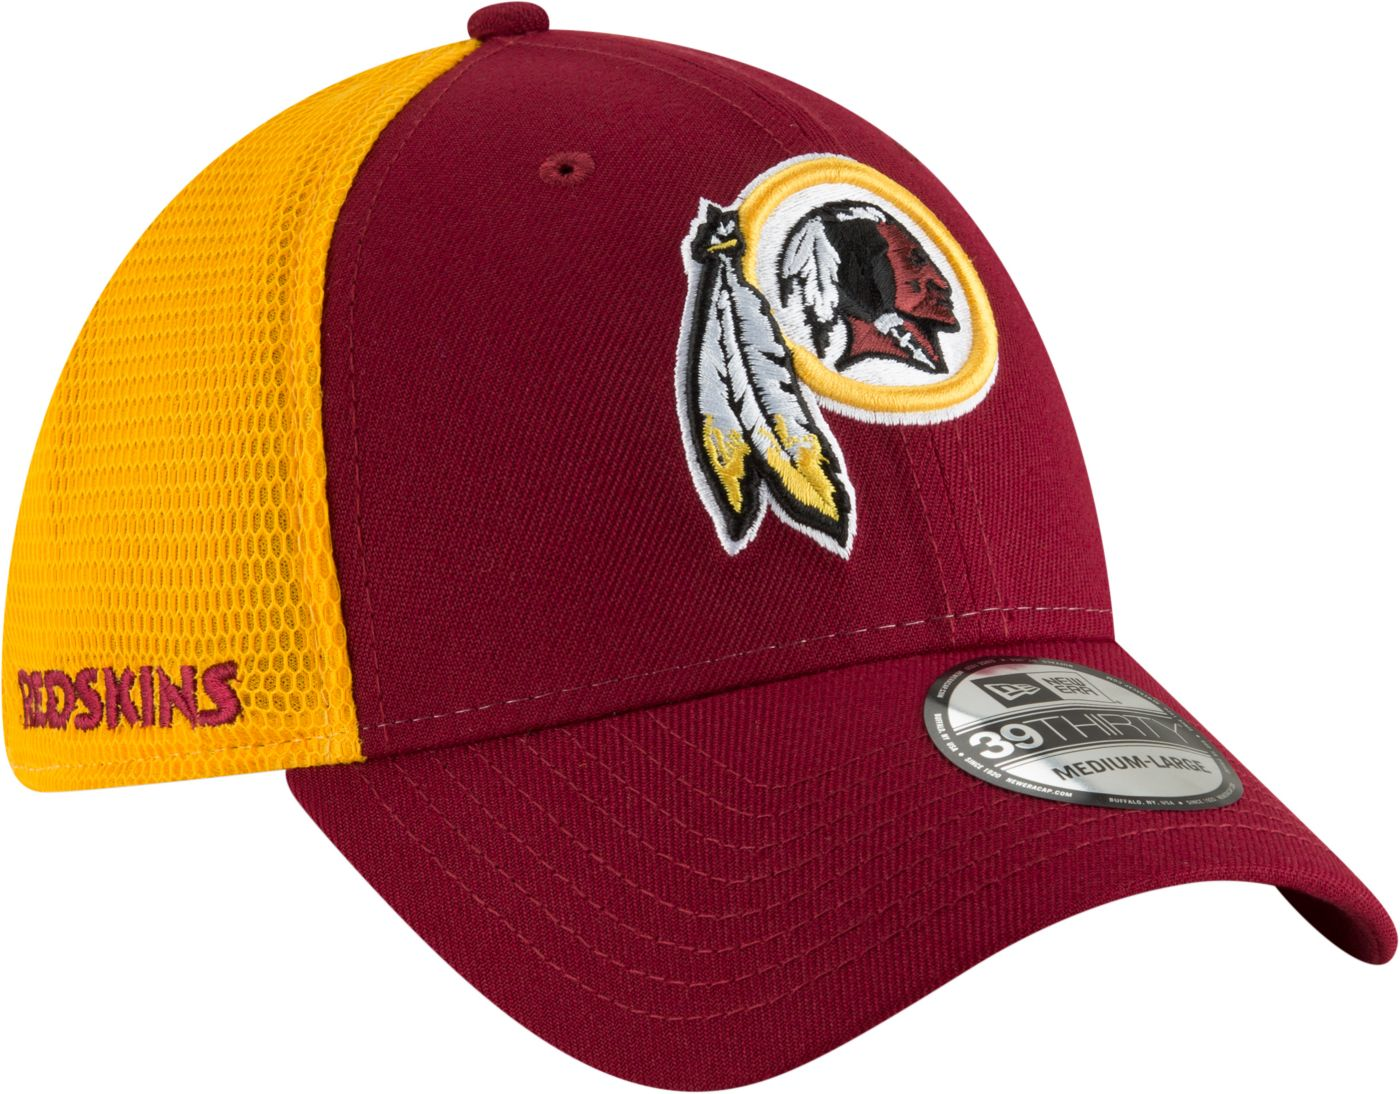 New Era Men's Washington Redskins 2Tone Sided 39Thirty Stretch Fit Hat